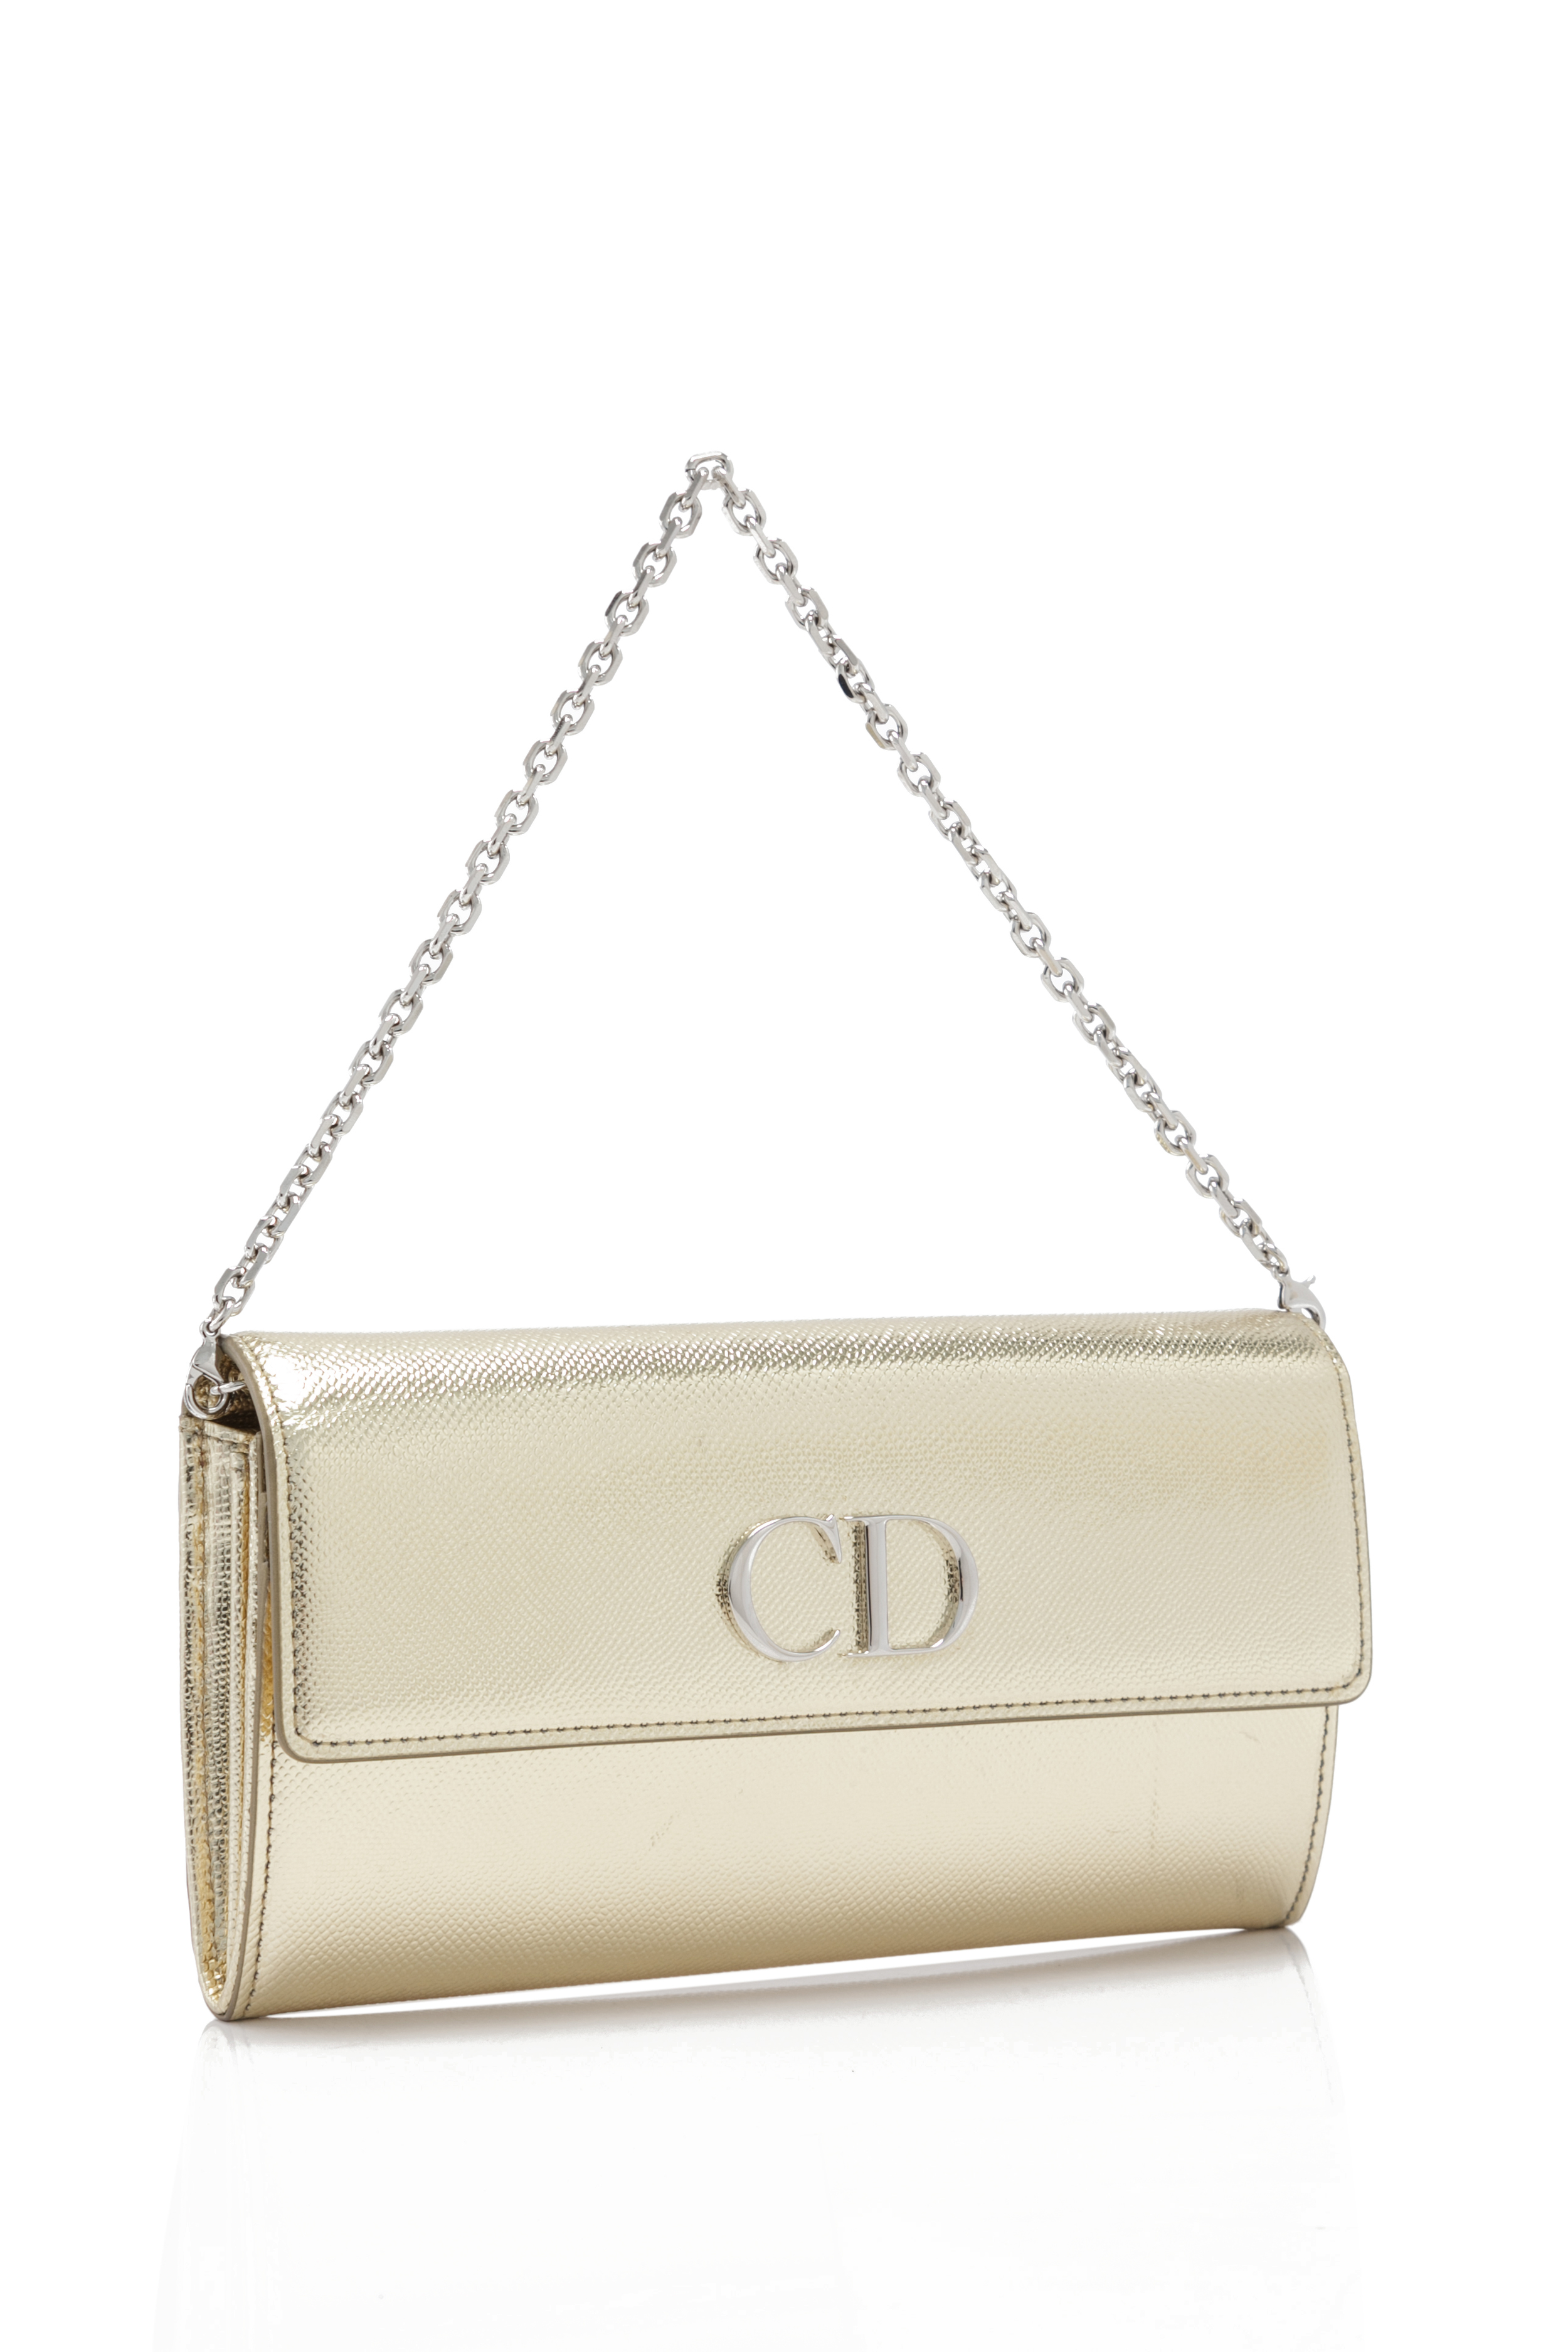 Christian Dior's Dior Mania Rendezvous Wallet (02).jpg